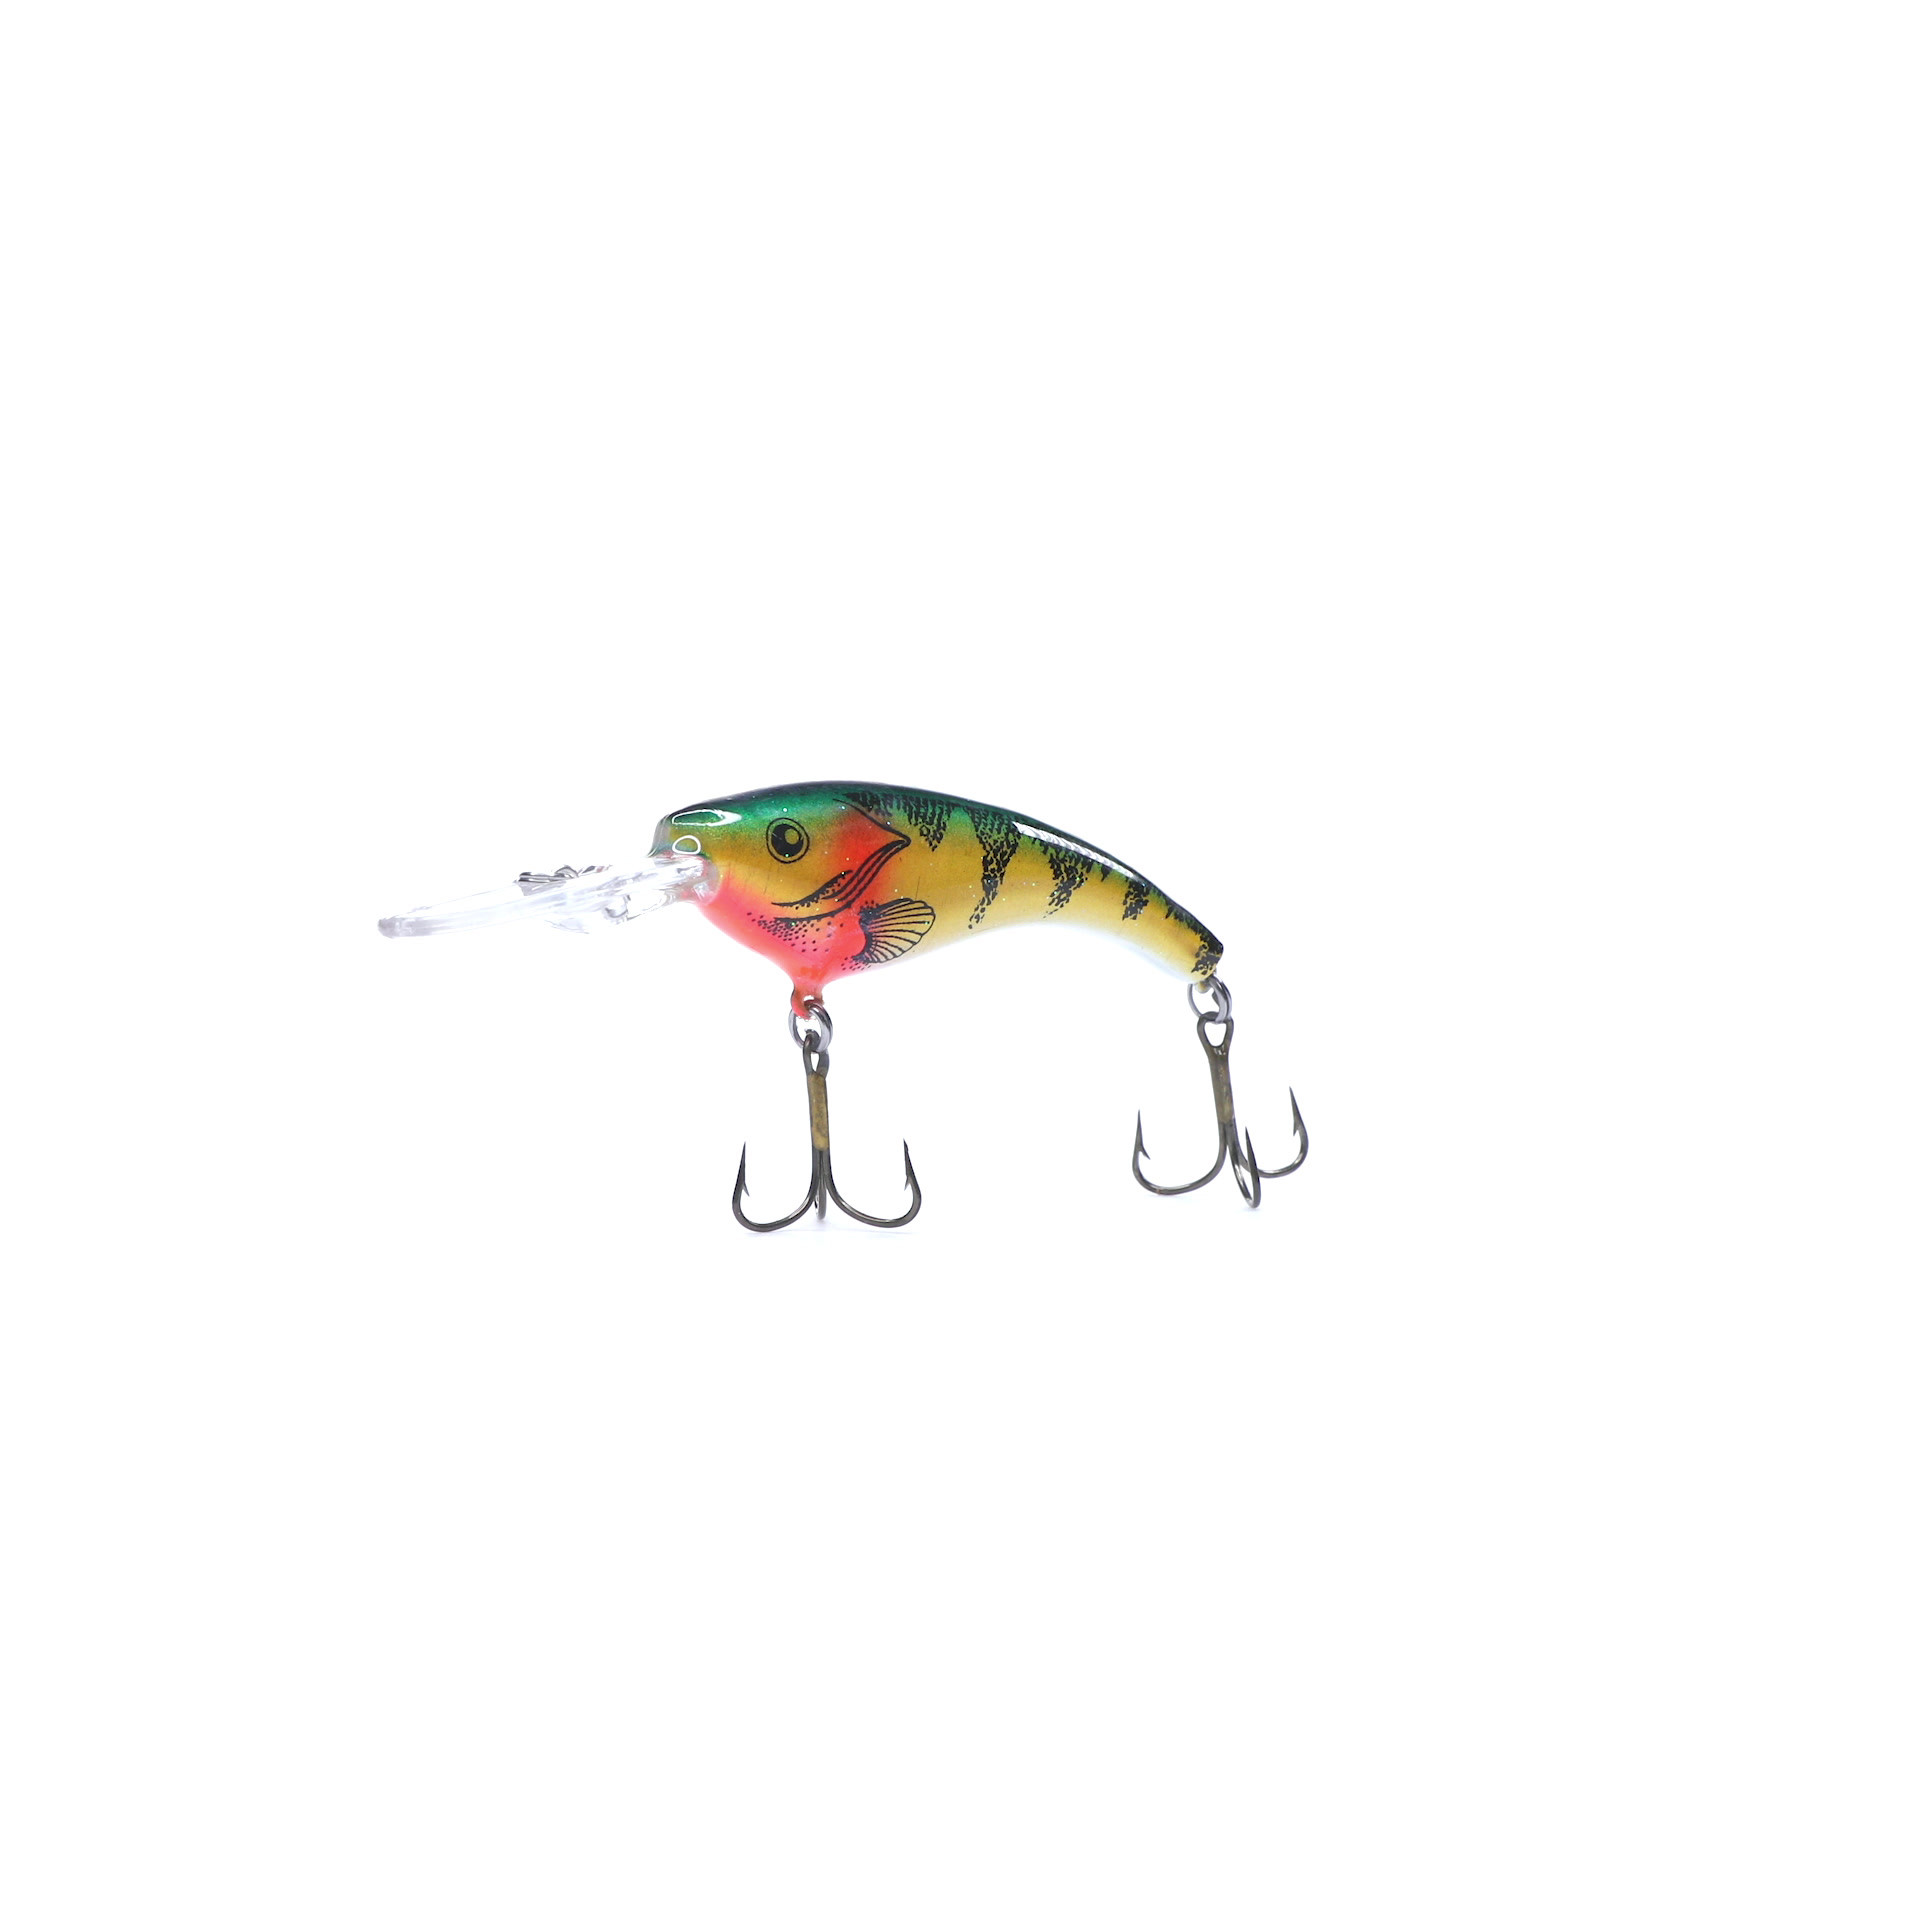 Home - Reef Runner Lures